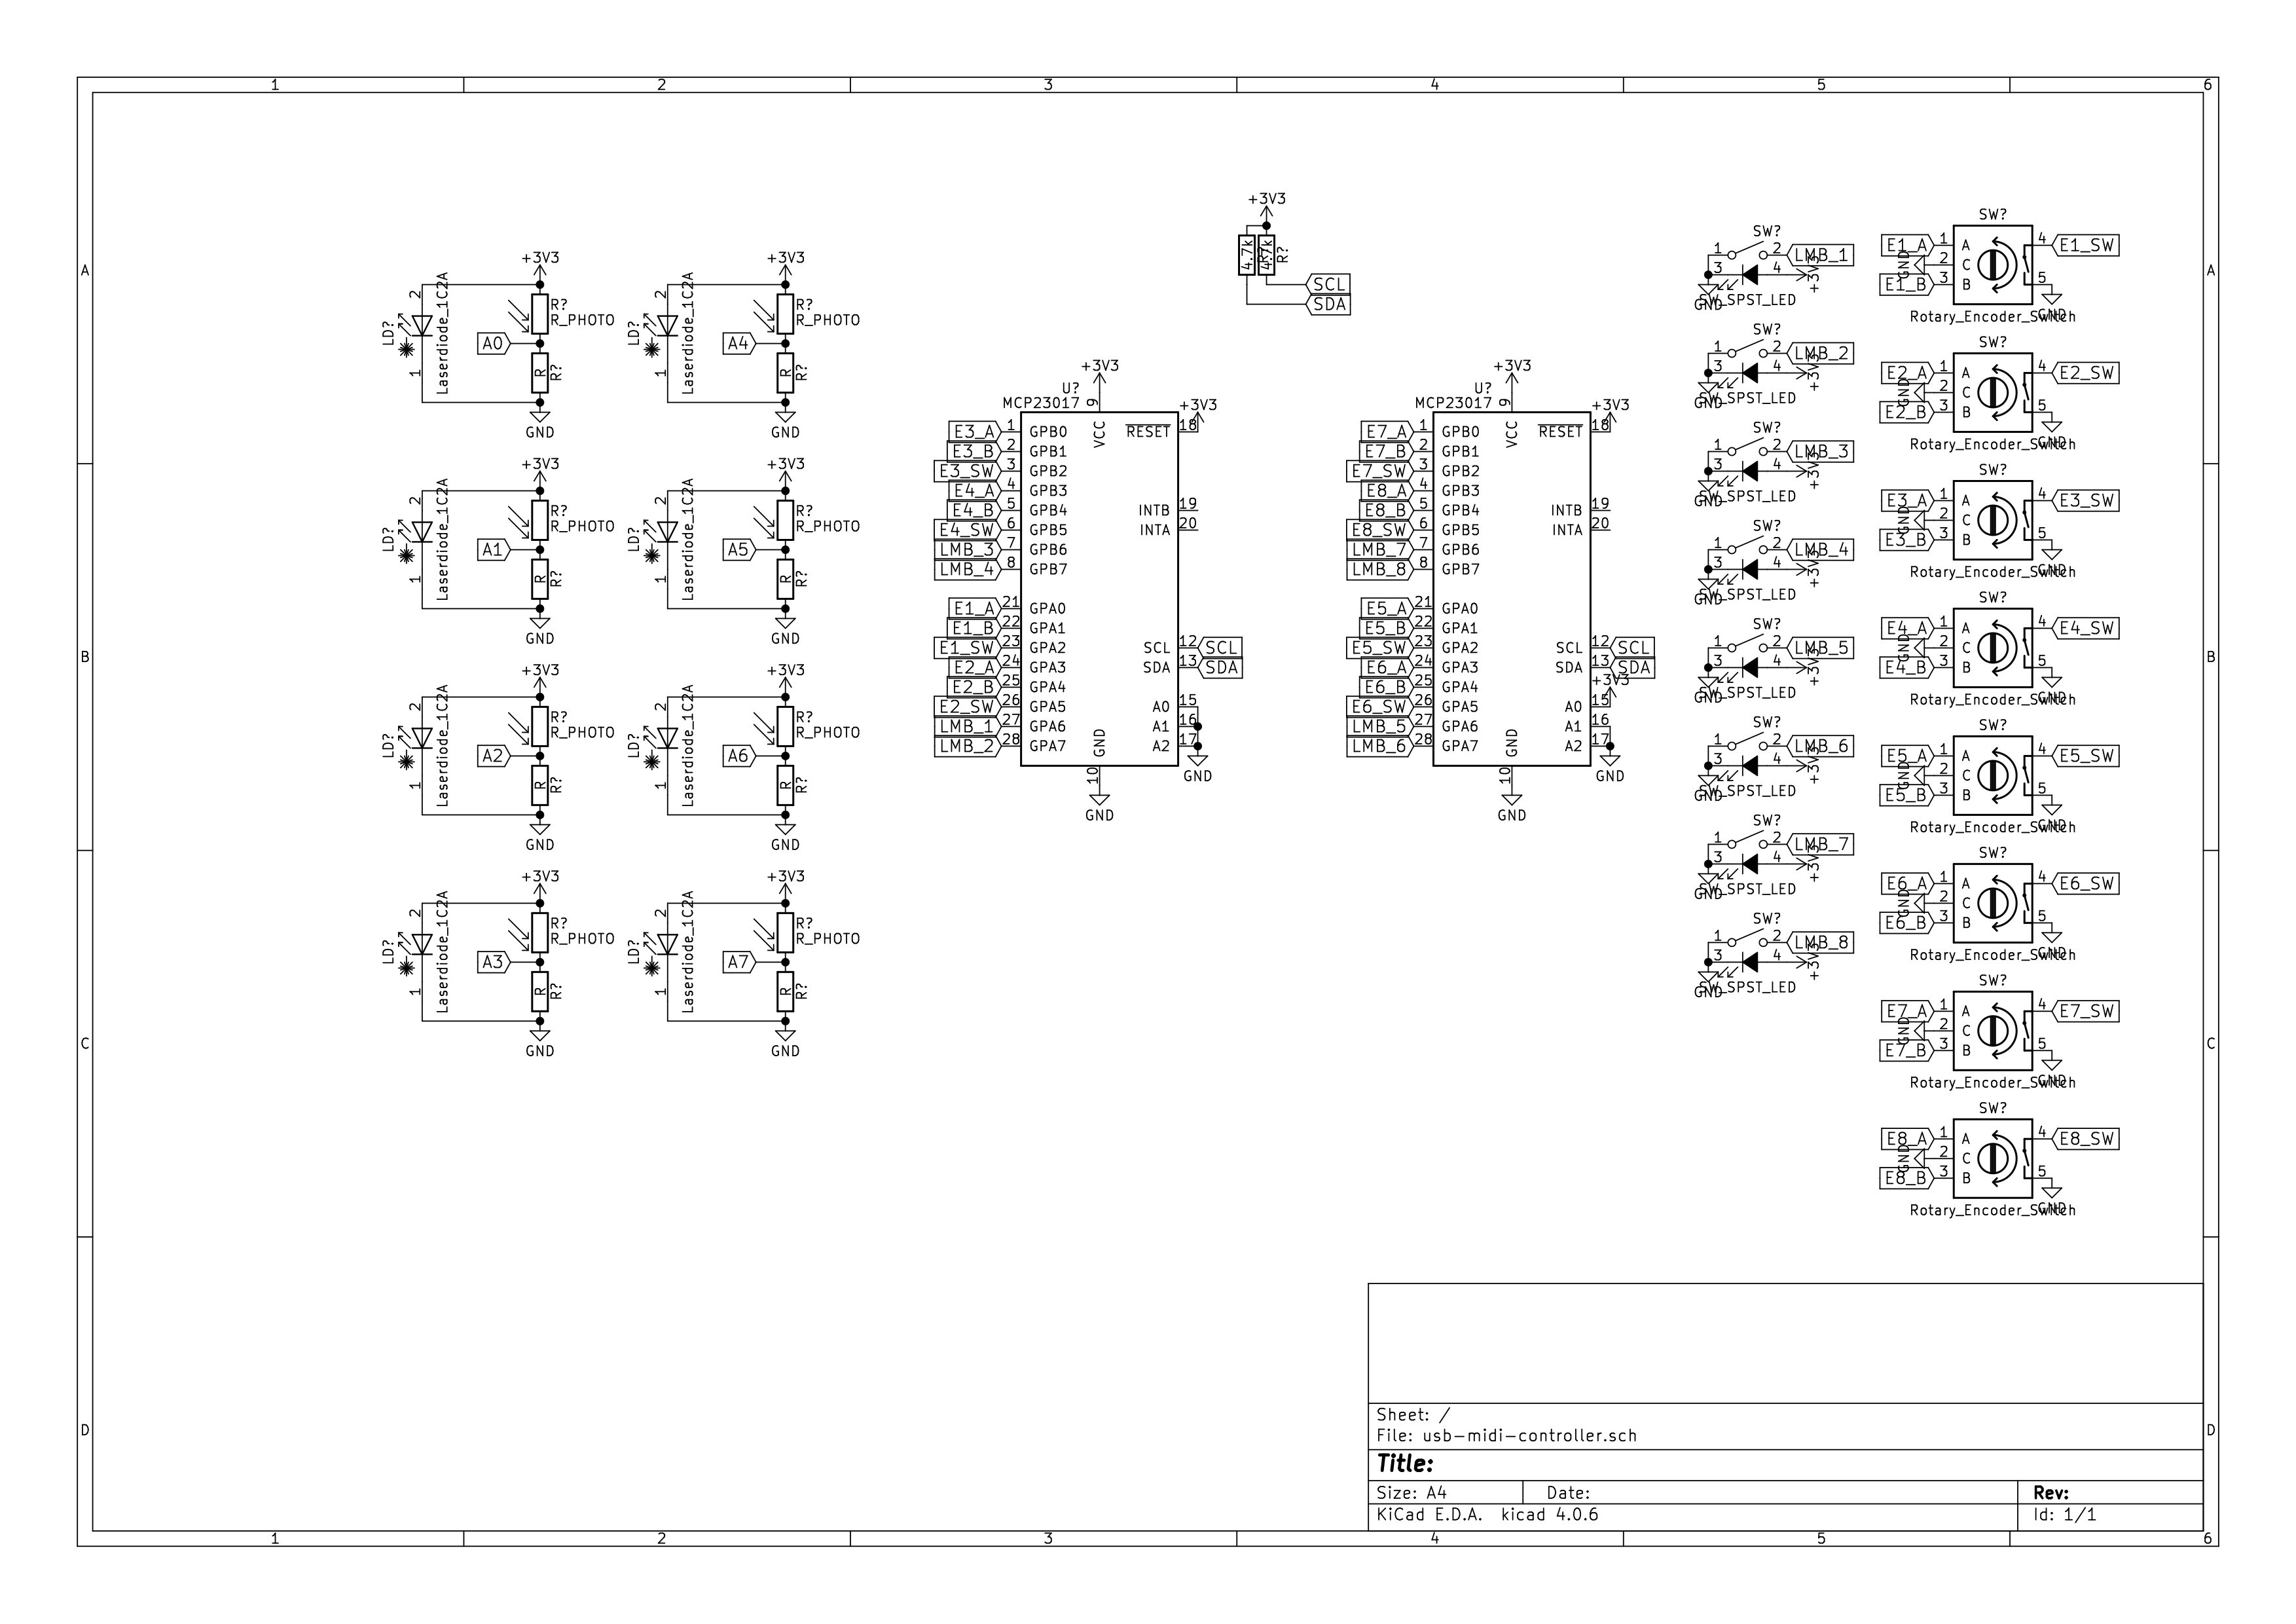 Groovy Encoders On Mcp23017 Hardware Zynthian Discourse Wiring Cloud Cosmuggs Outletorg